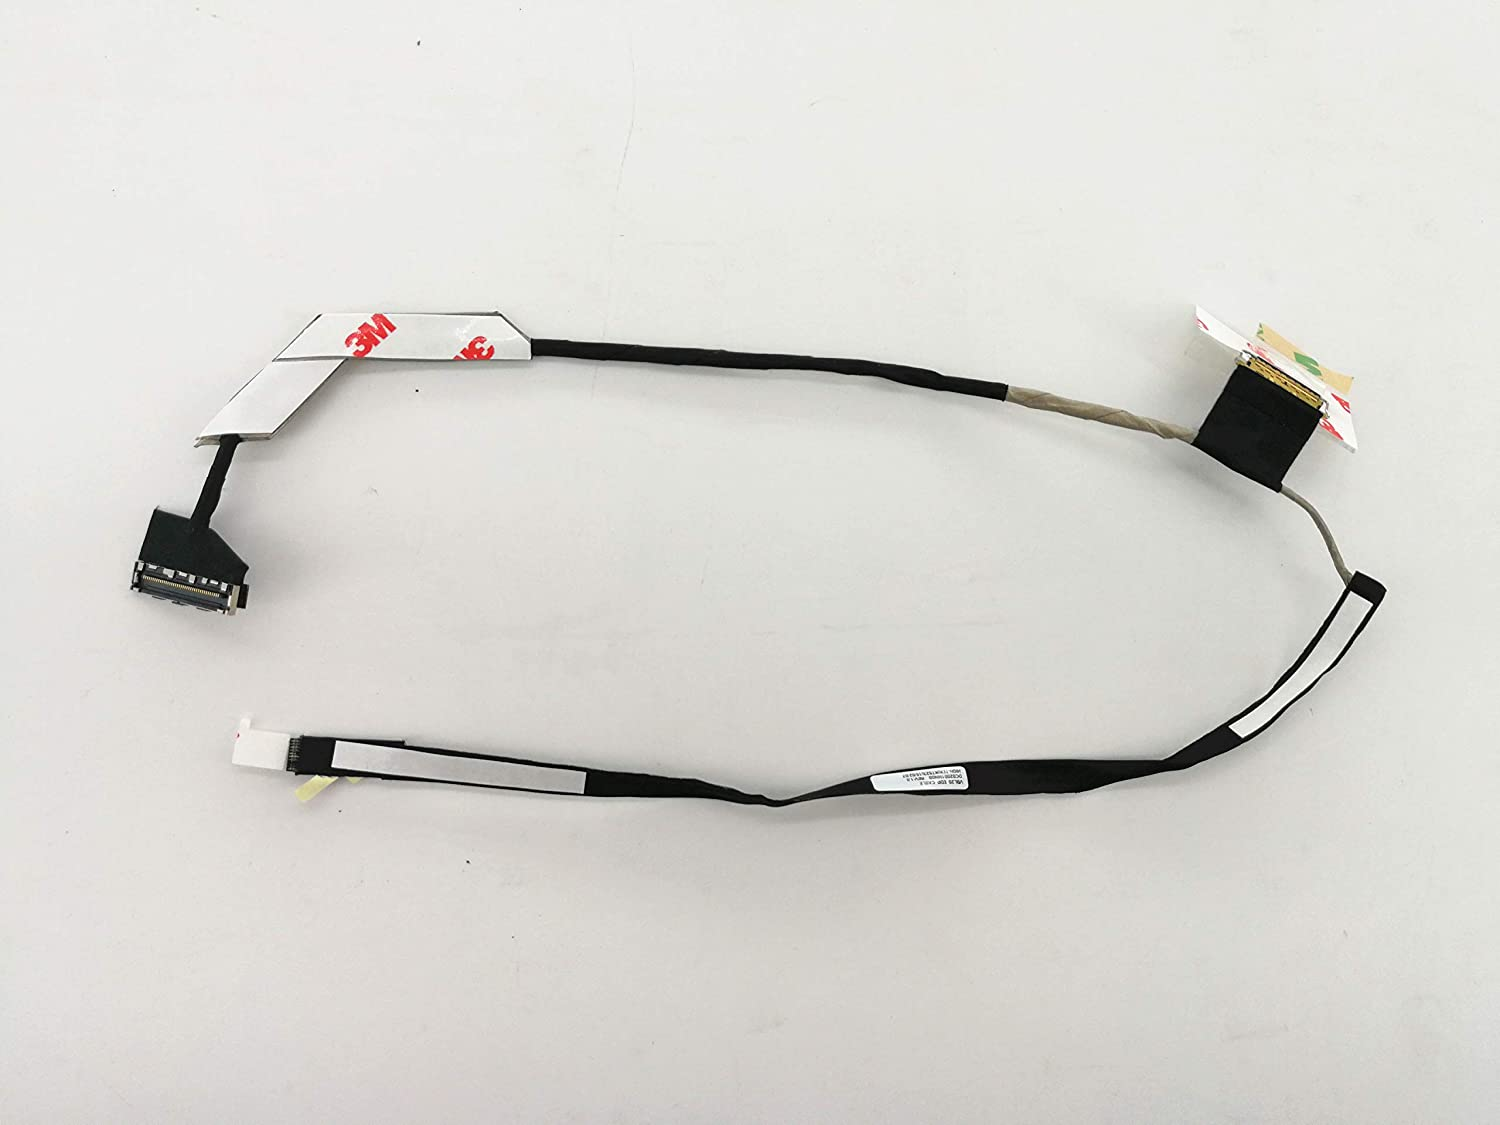 SOUTHERNINTL New Repalcement for HP ZBook KIT 15 G2 850 G1 Screen Cable DC02001MN00 730801-001